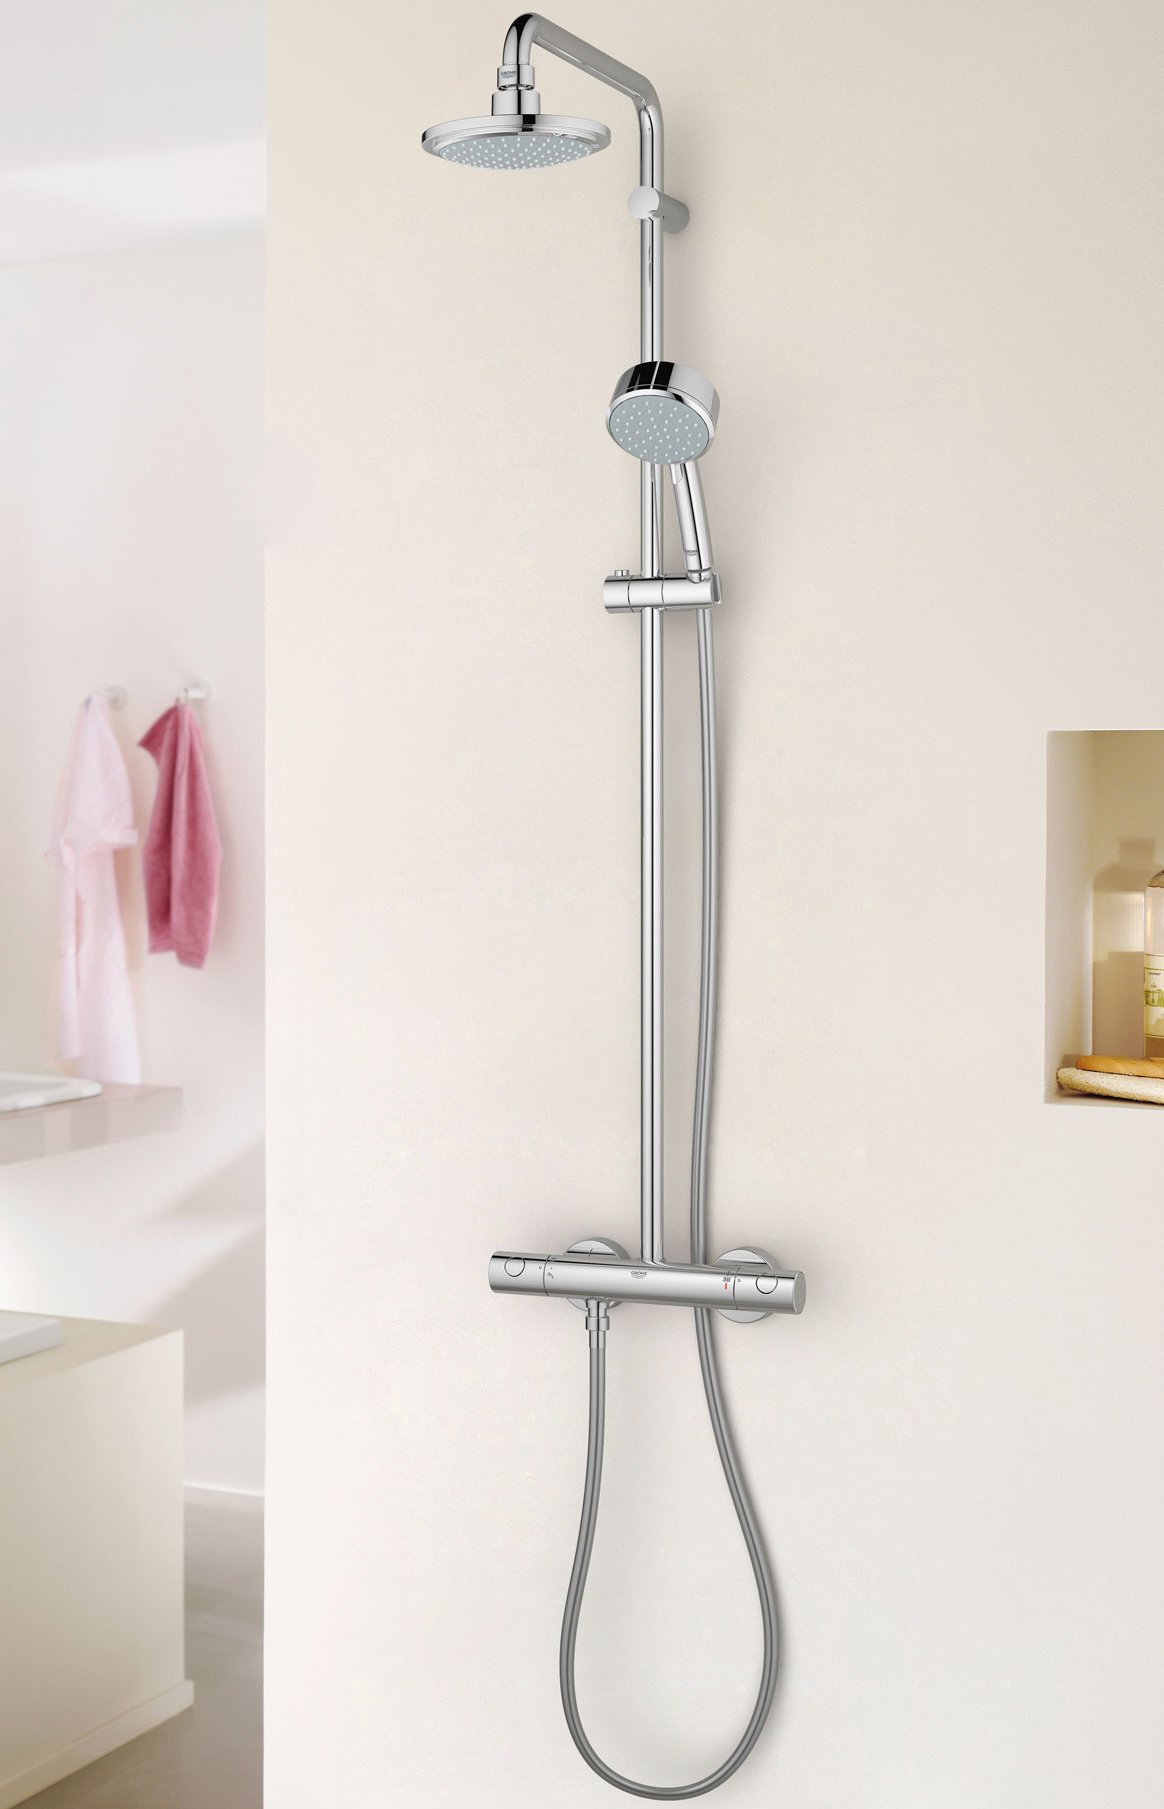 Grohe new tempesta cosmopolitan shower system with thermostat for Grohe cosmopolitan 1000 thermostat